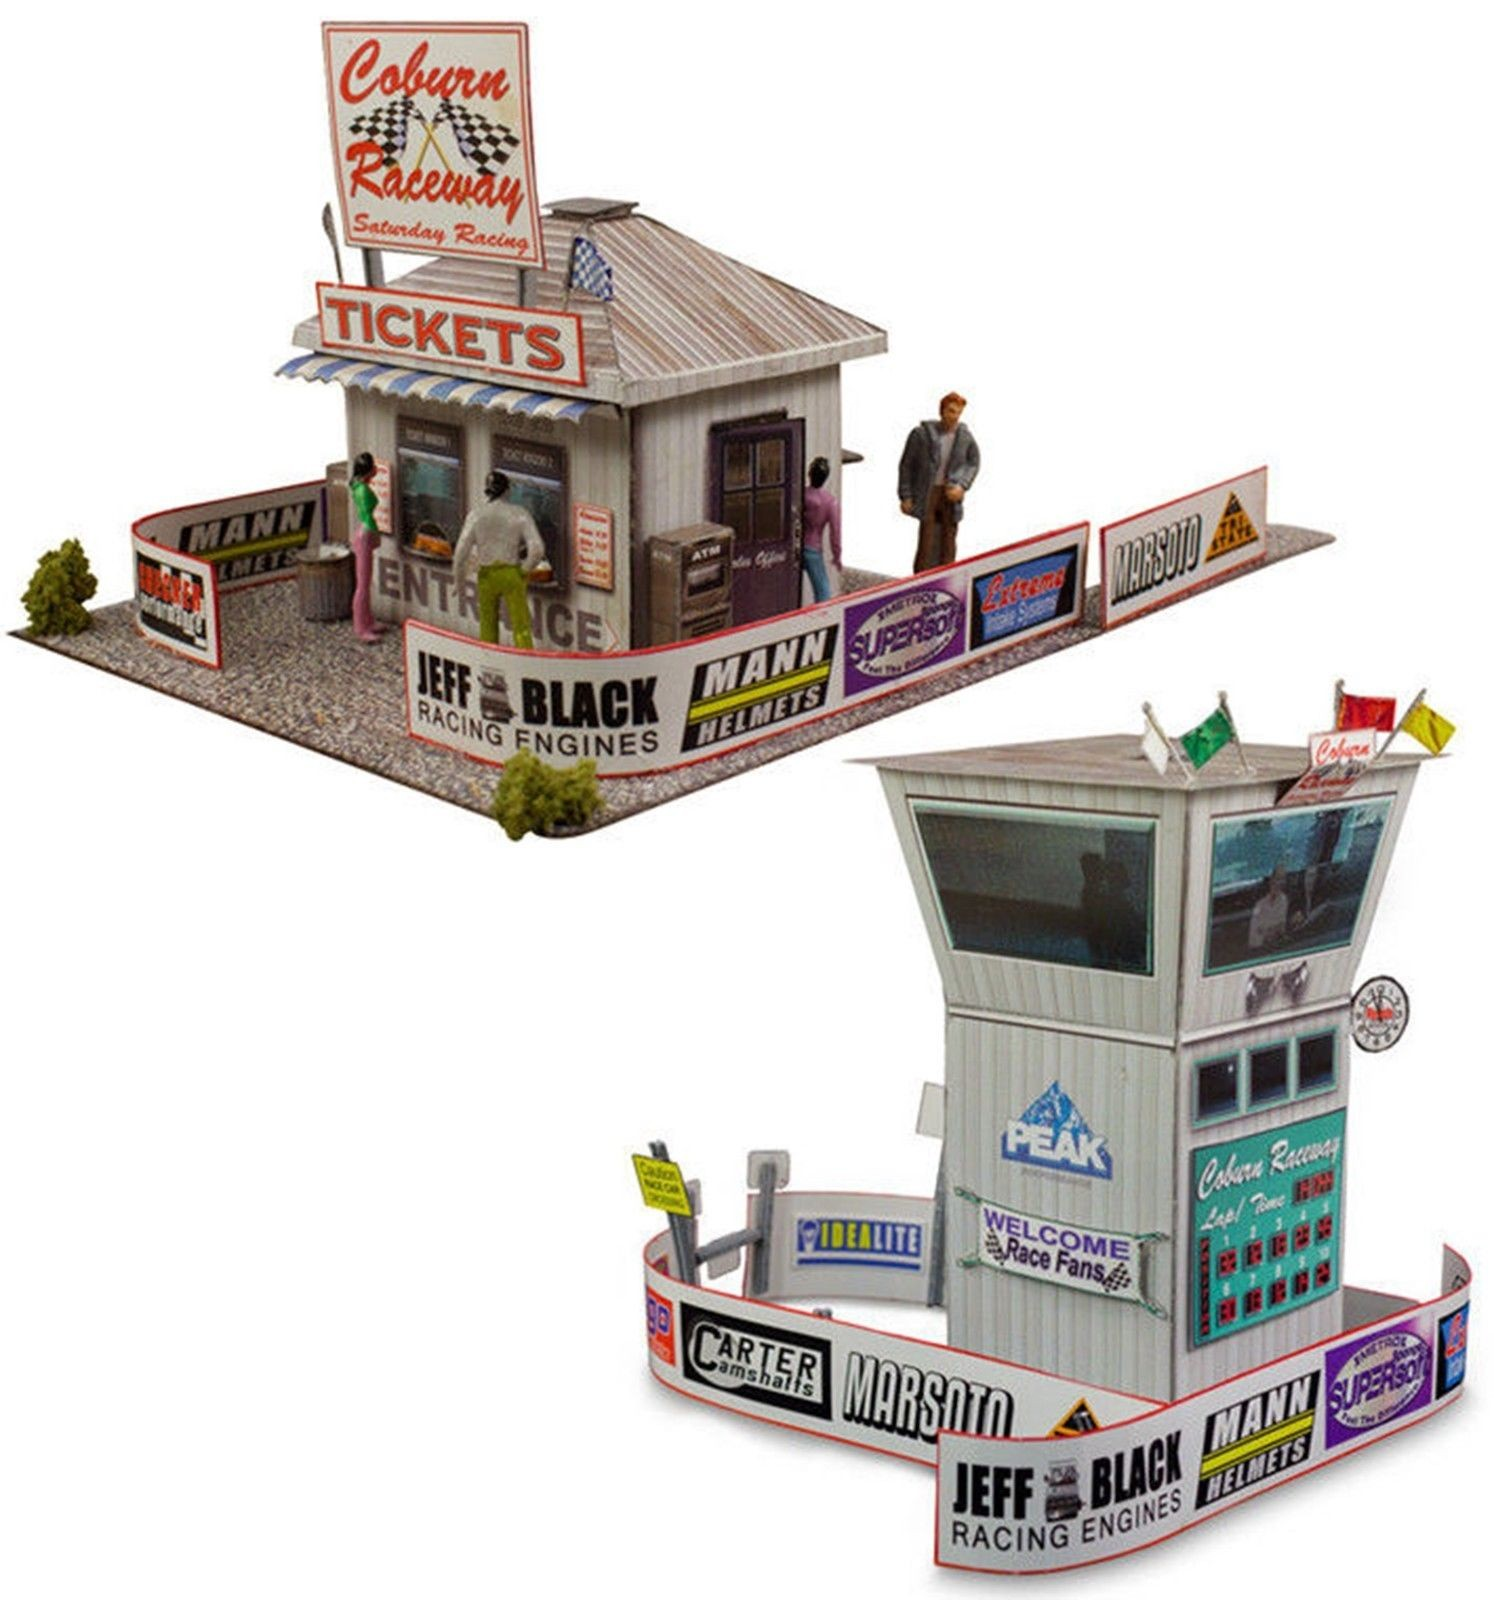 """BK 8701 1:87 Scale """"Race Tower & Ticket Gate Entrance"""" Photo Real Scale Building Kit"""